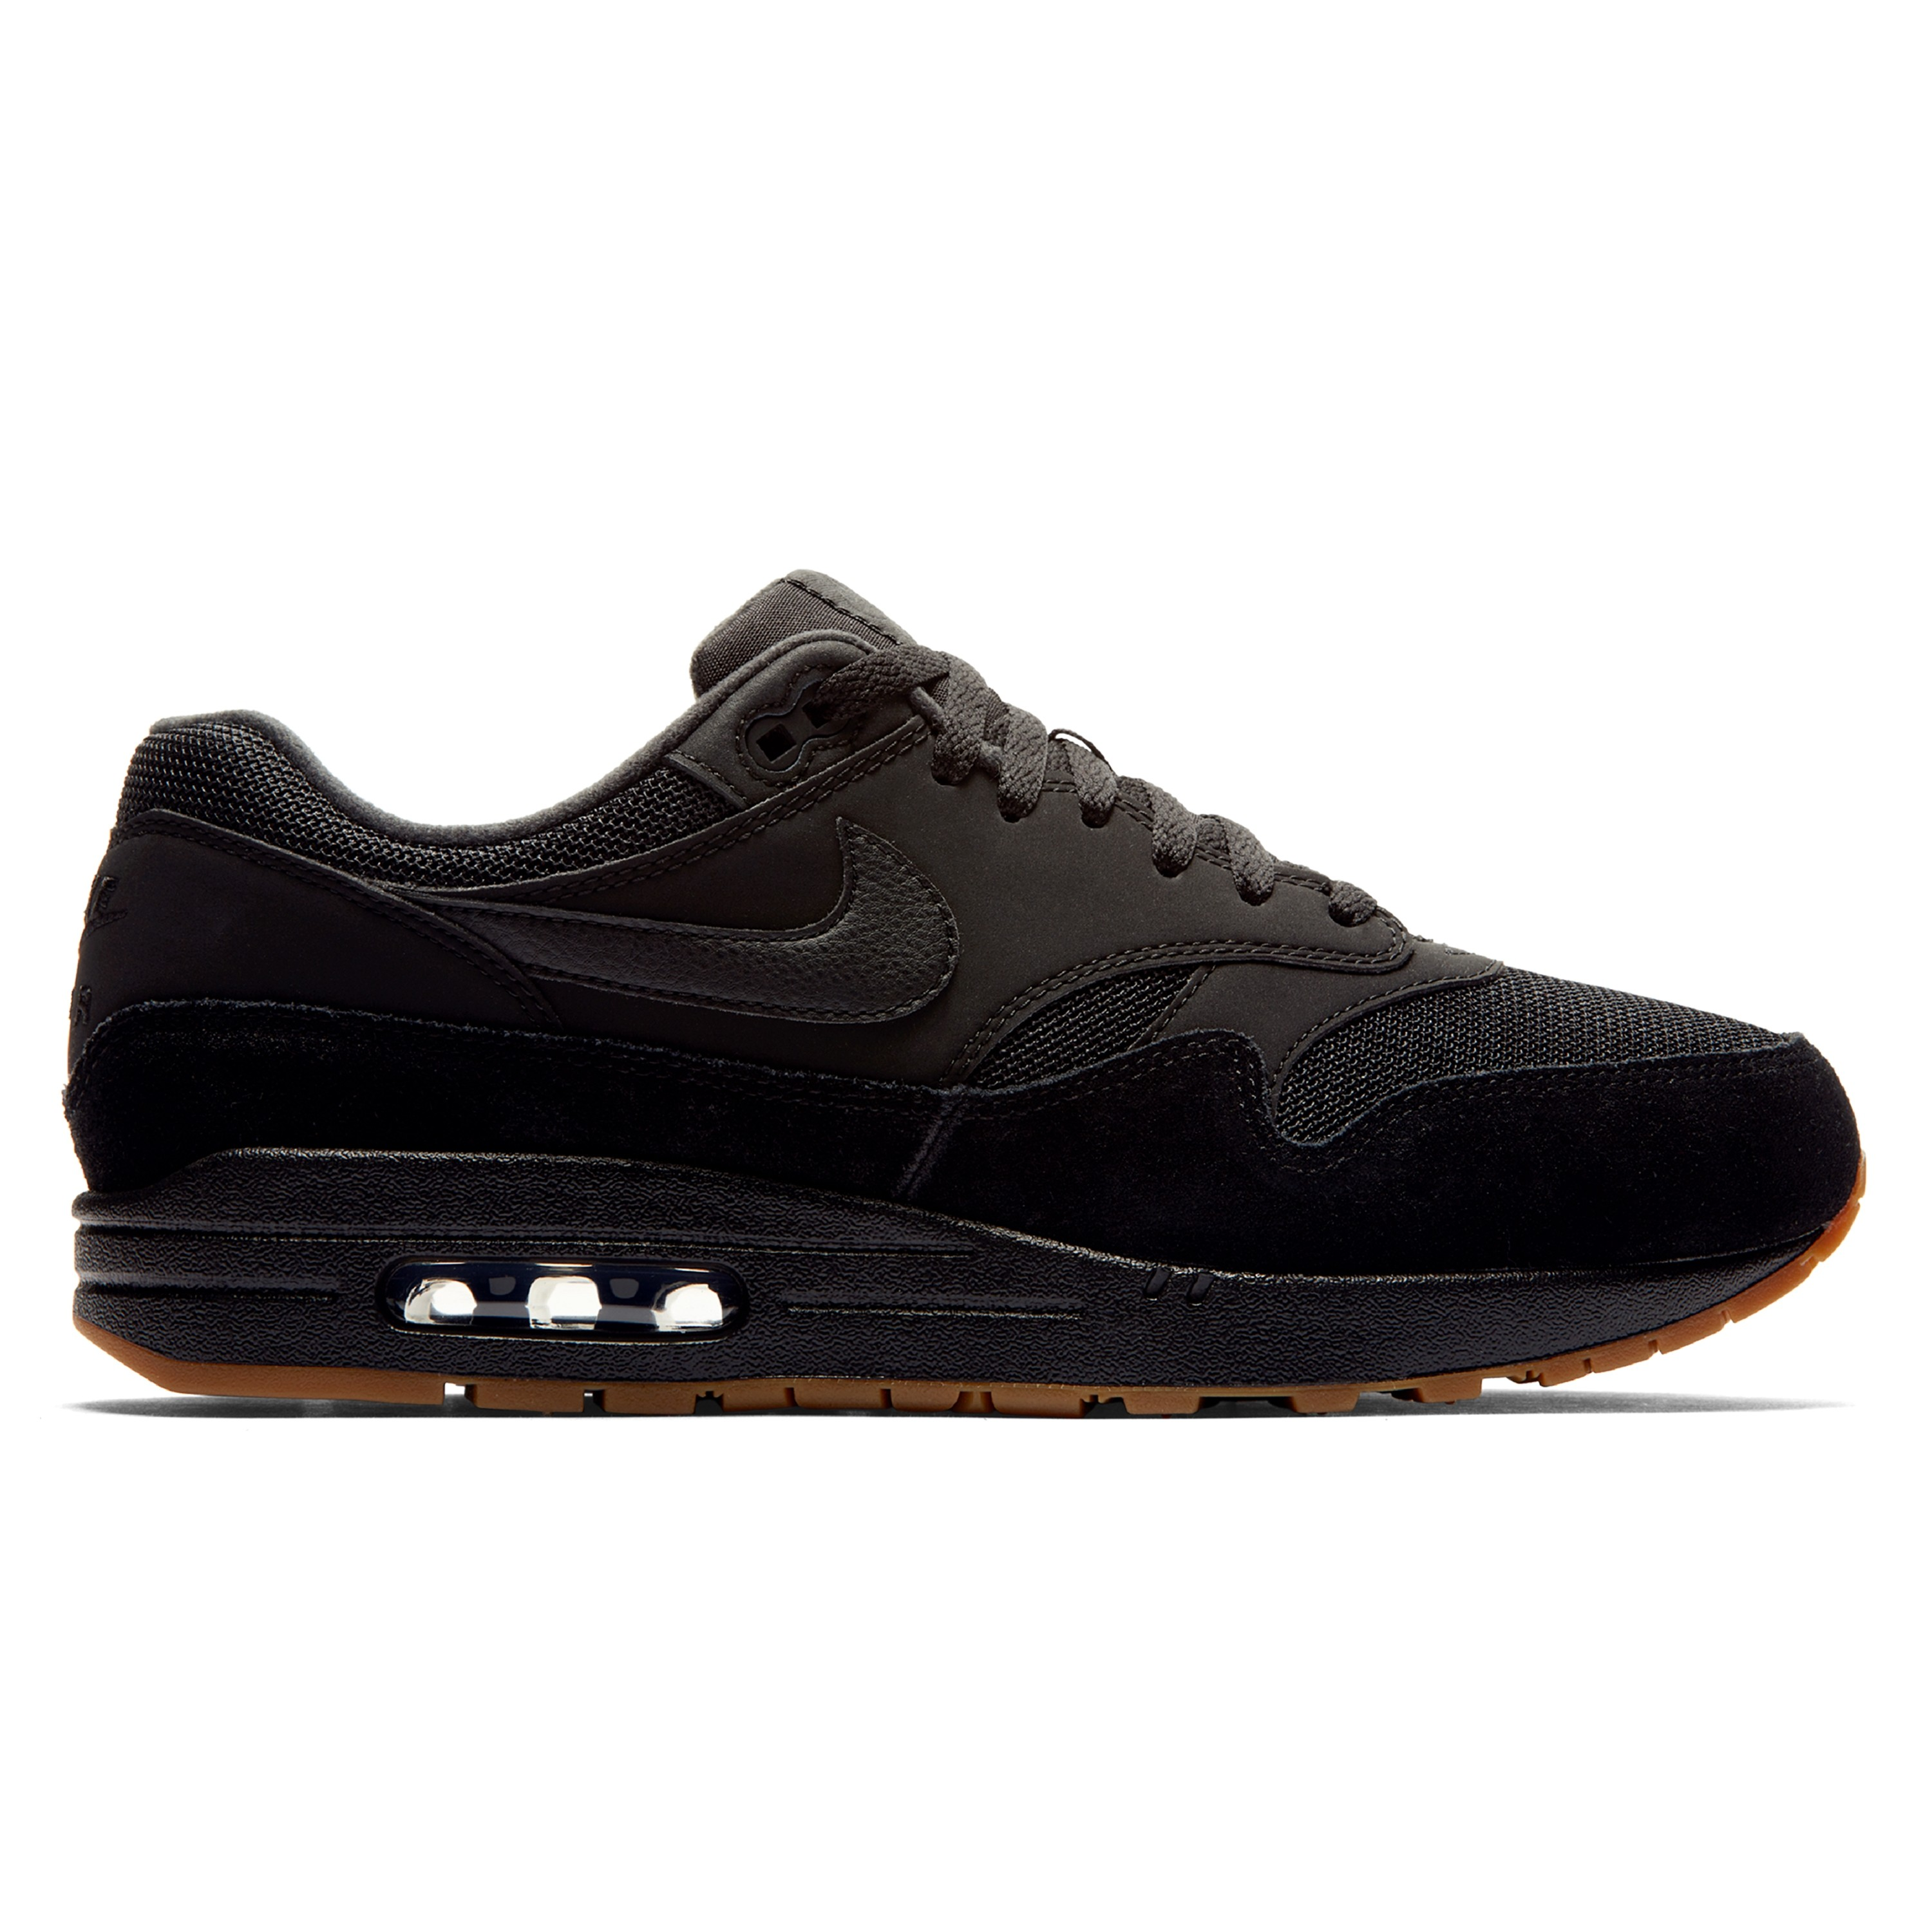 c9d7d63bb375 Nike Air Max 1  Gum Pack  (Black Black-Black-Gum Medium Brown ...